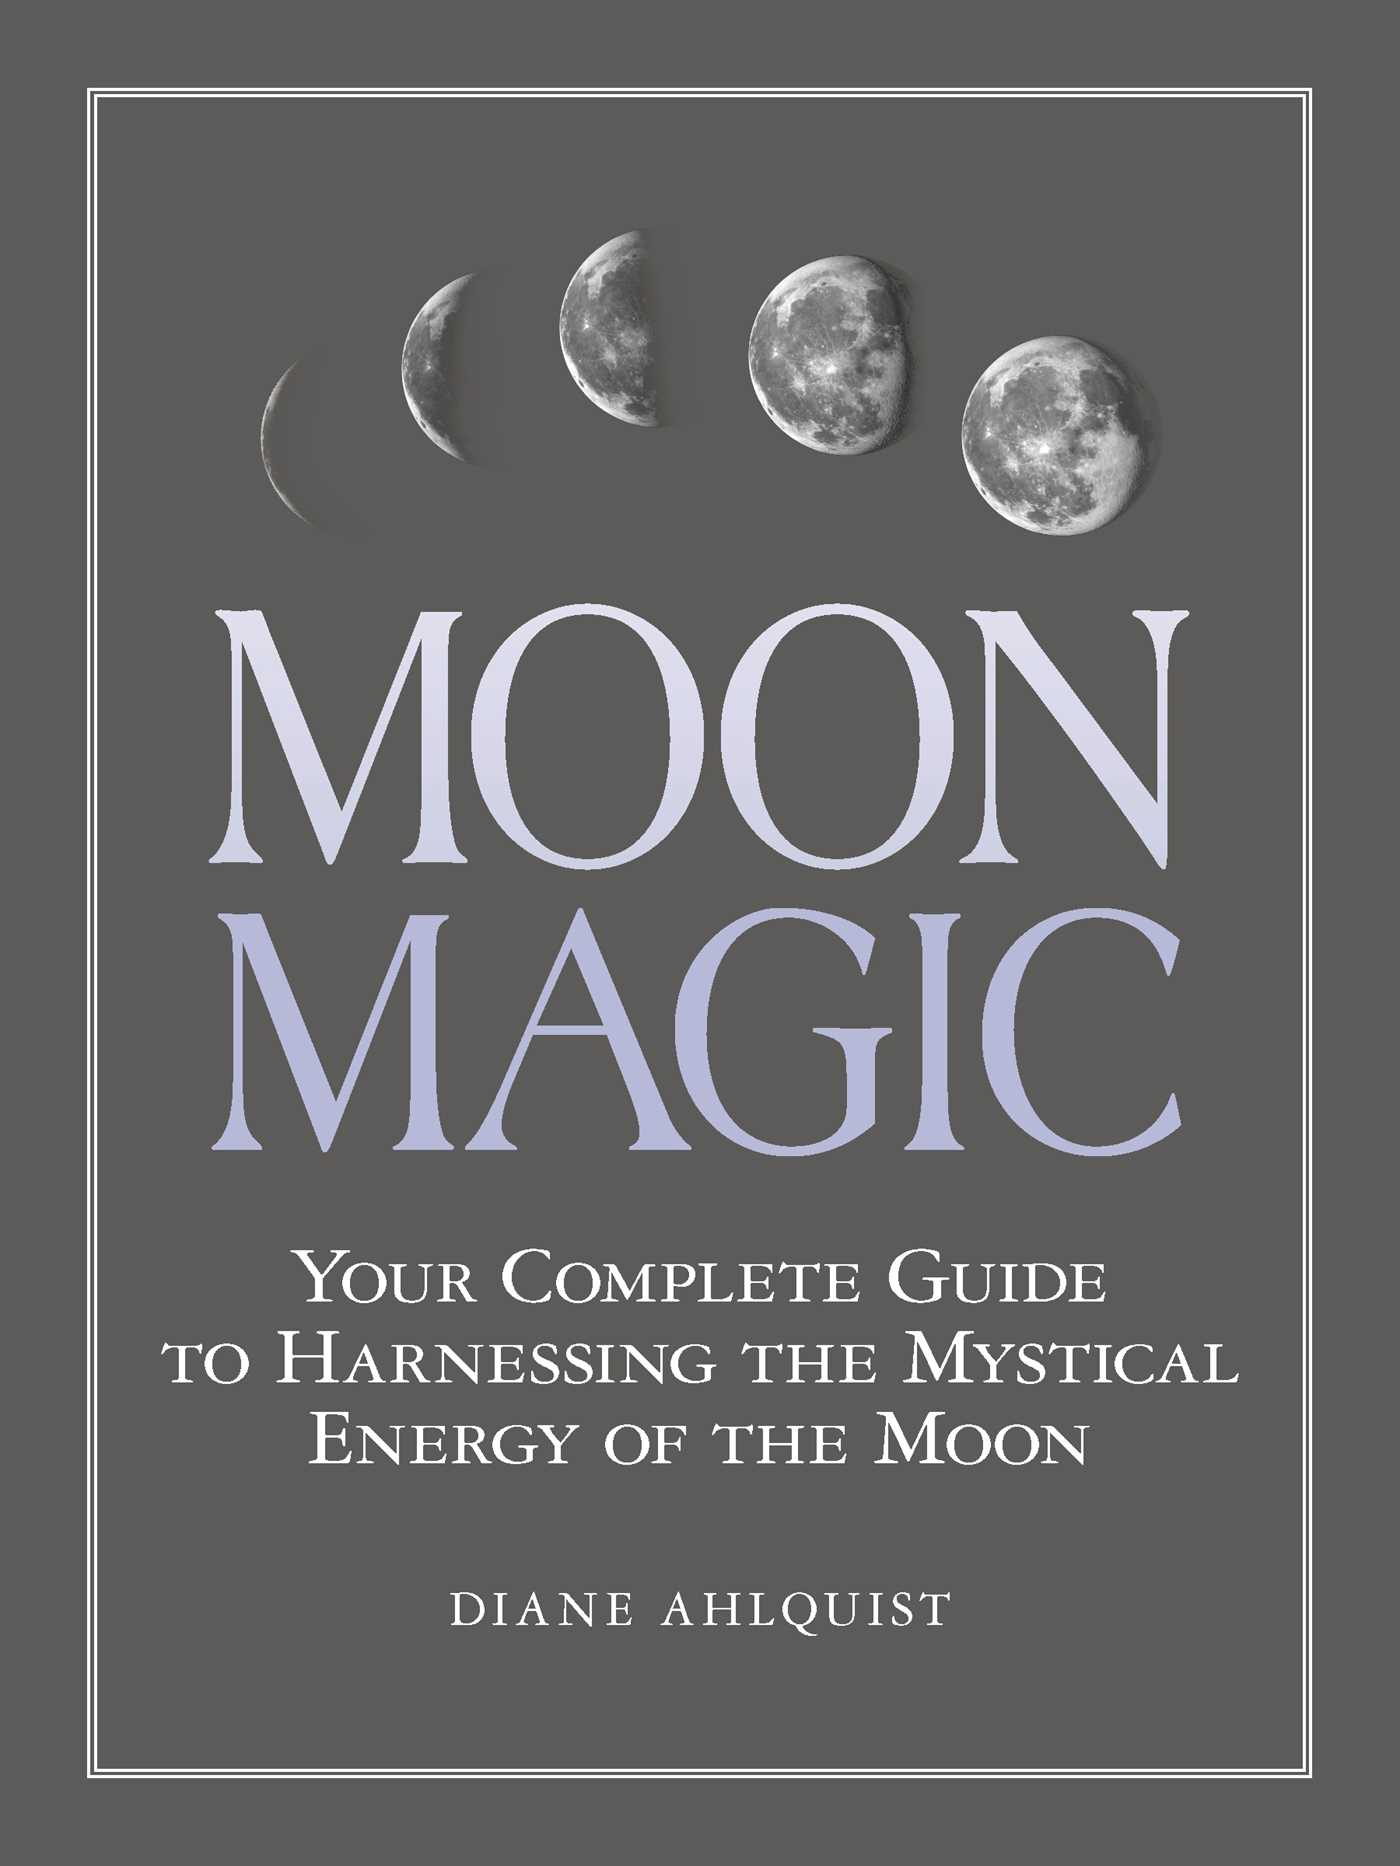 Moon magic 9781507205013 hr